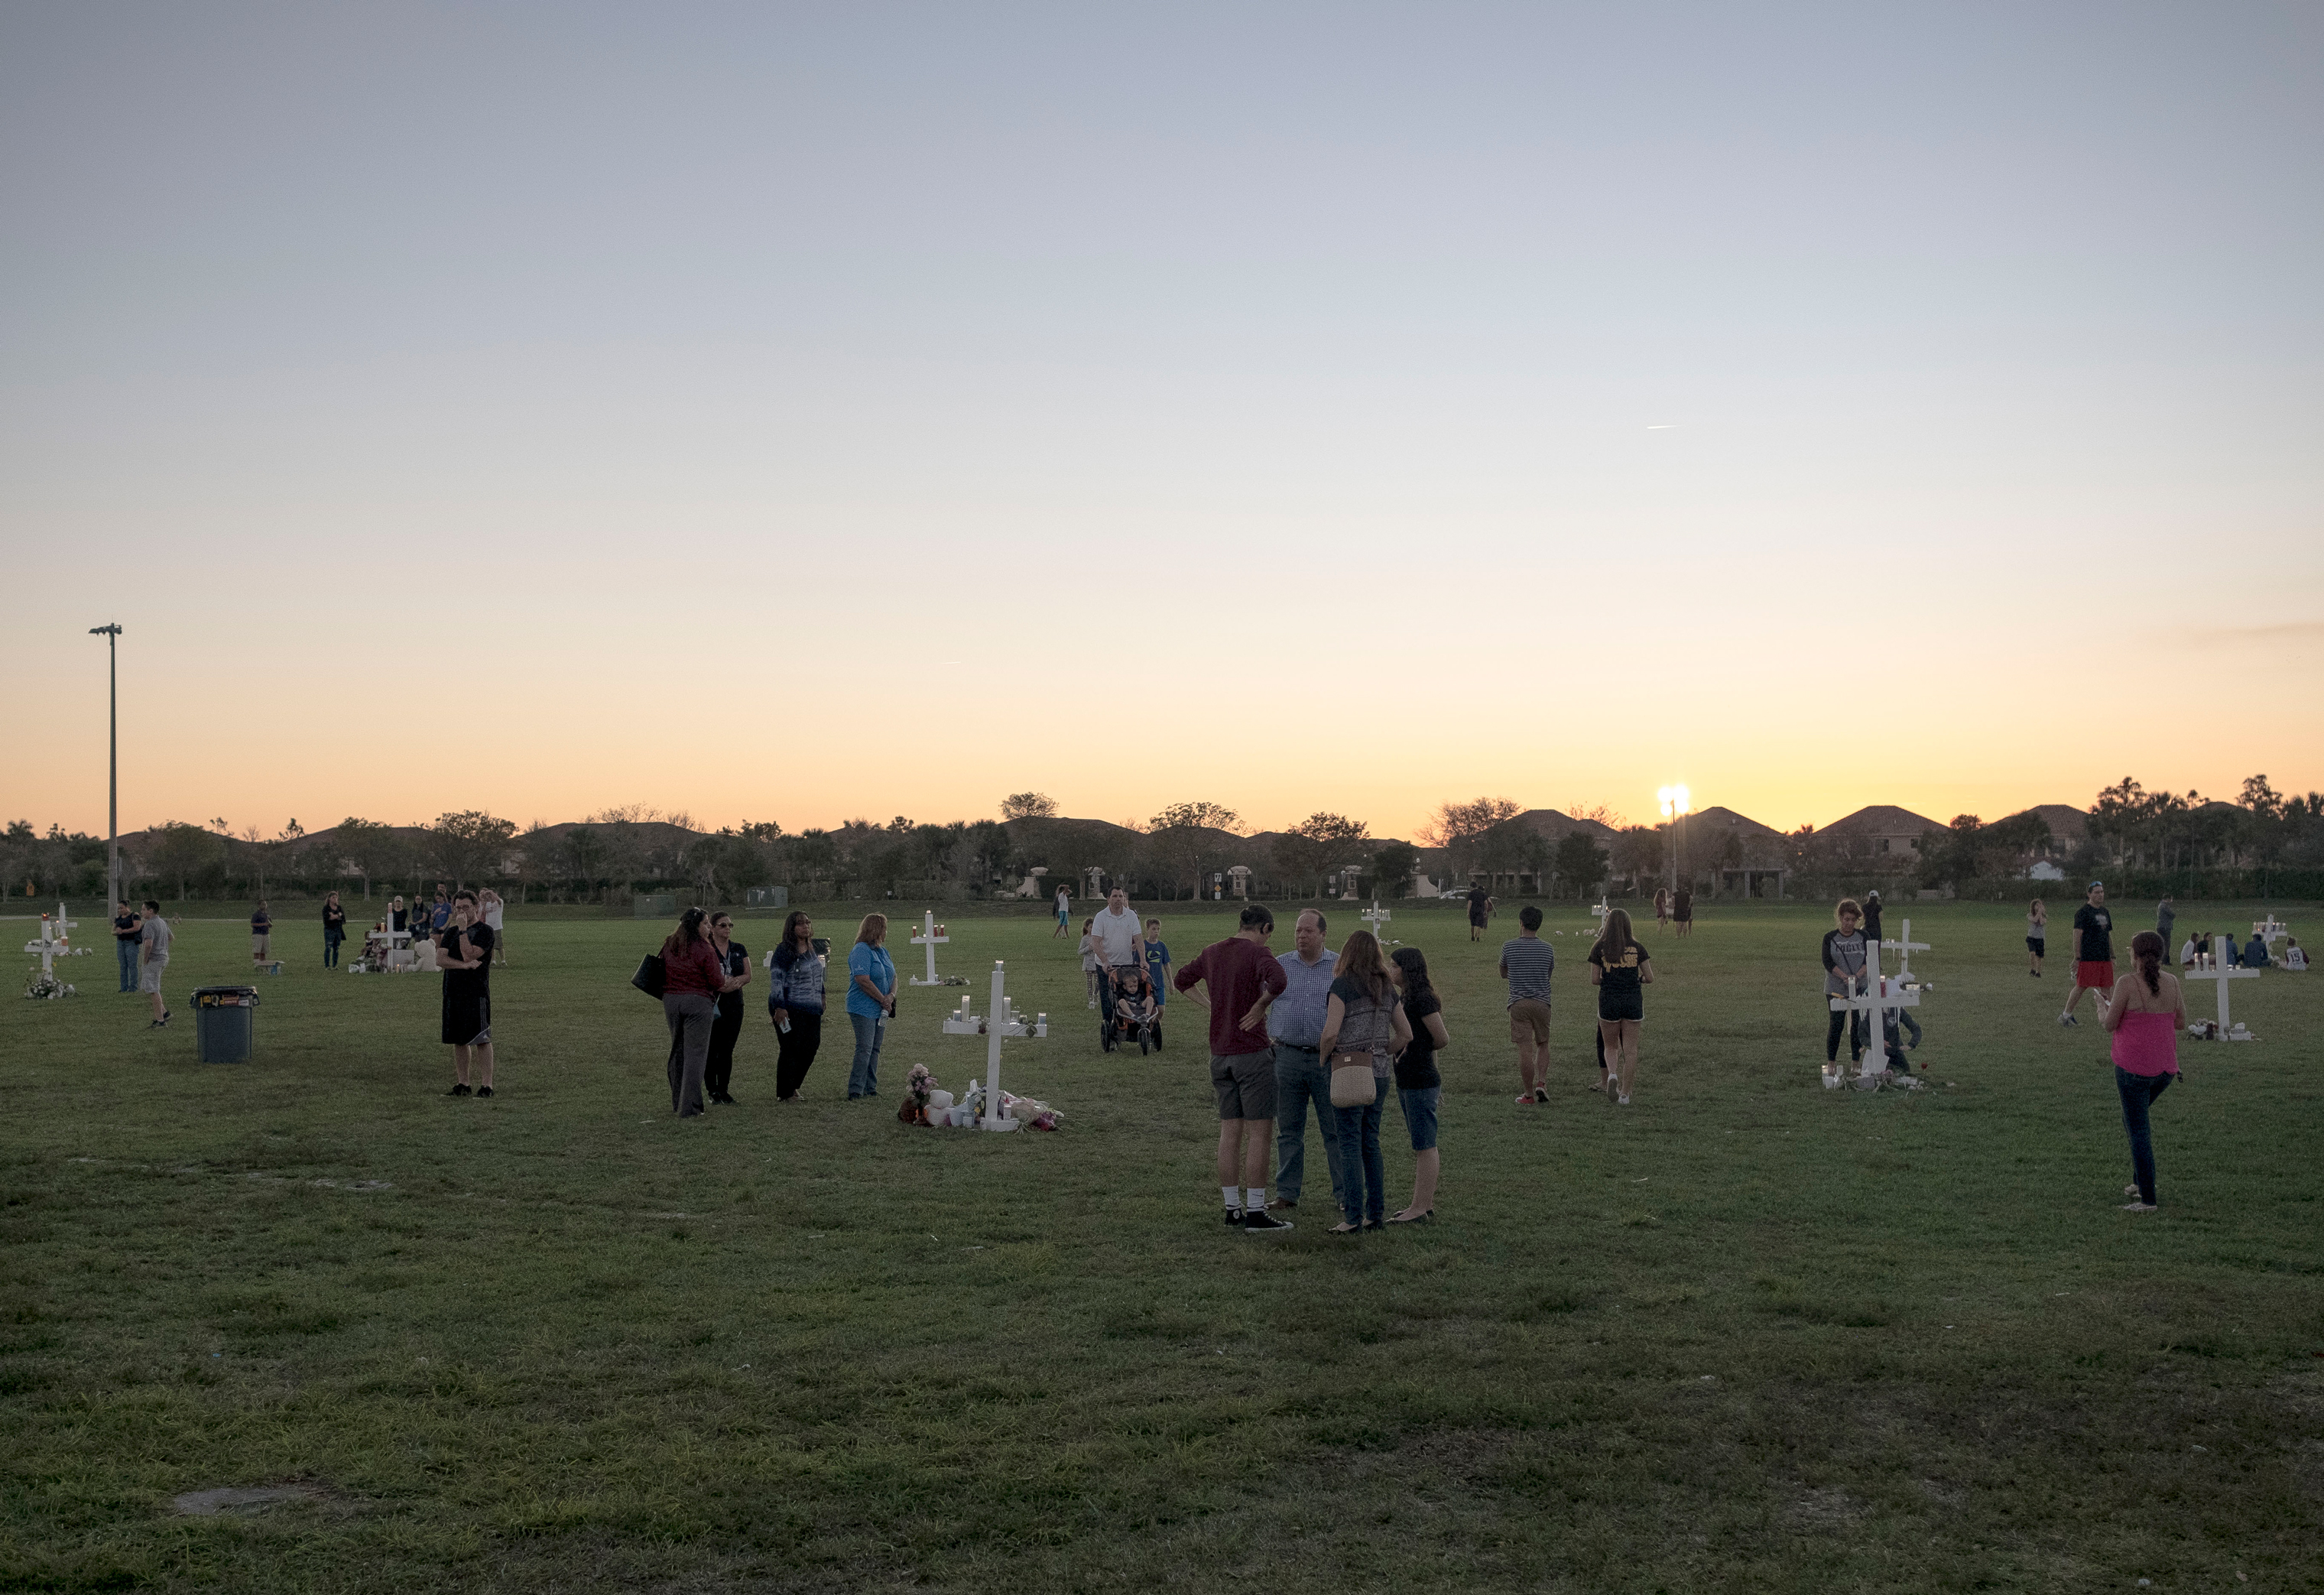 17 crosses were placed at Pine Trails Park in Parkland before the candlelight vigil memorializing the victims who lost on Valentine's day. What was a public field for families to gather in support of loved ones during soccer games, became a memorial site to mourn the lives lost in the shooting.